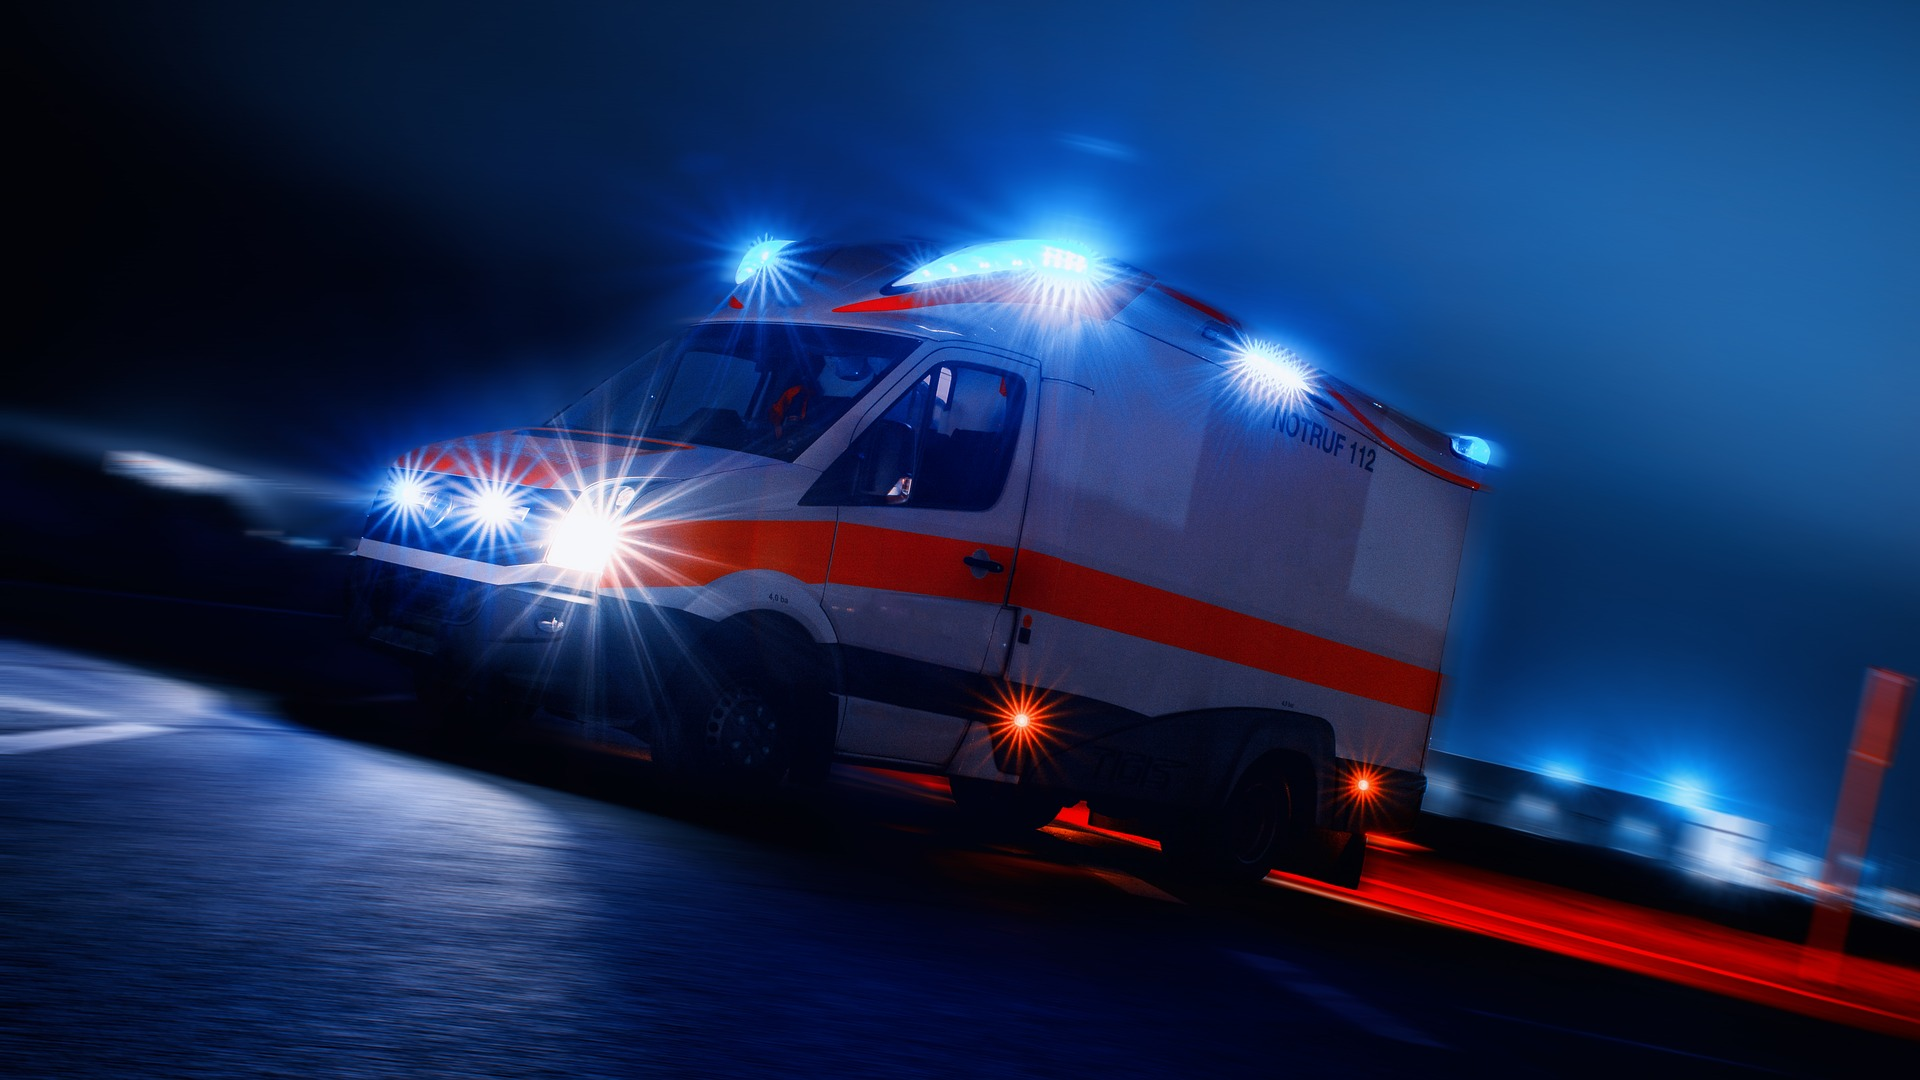 Worker Killed After Falling 65 Feet While Driving Dump Truck